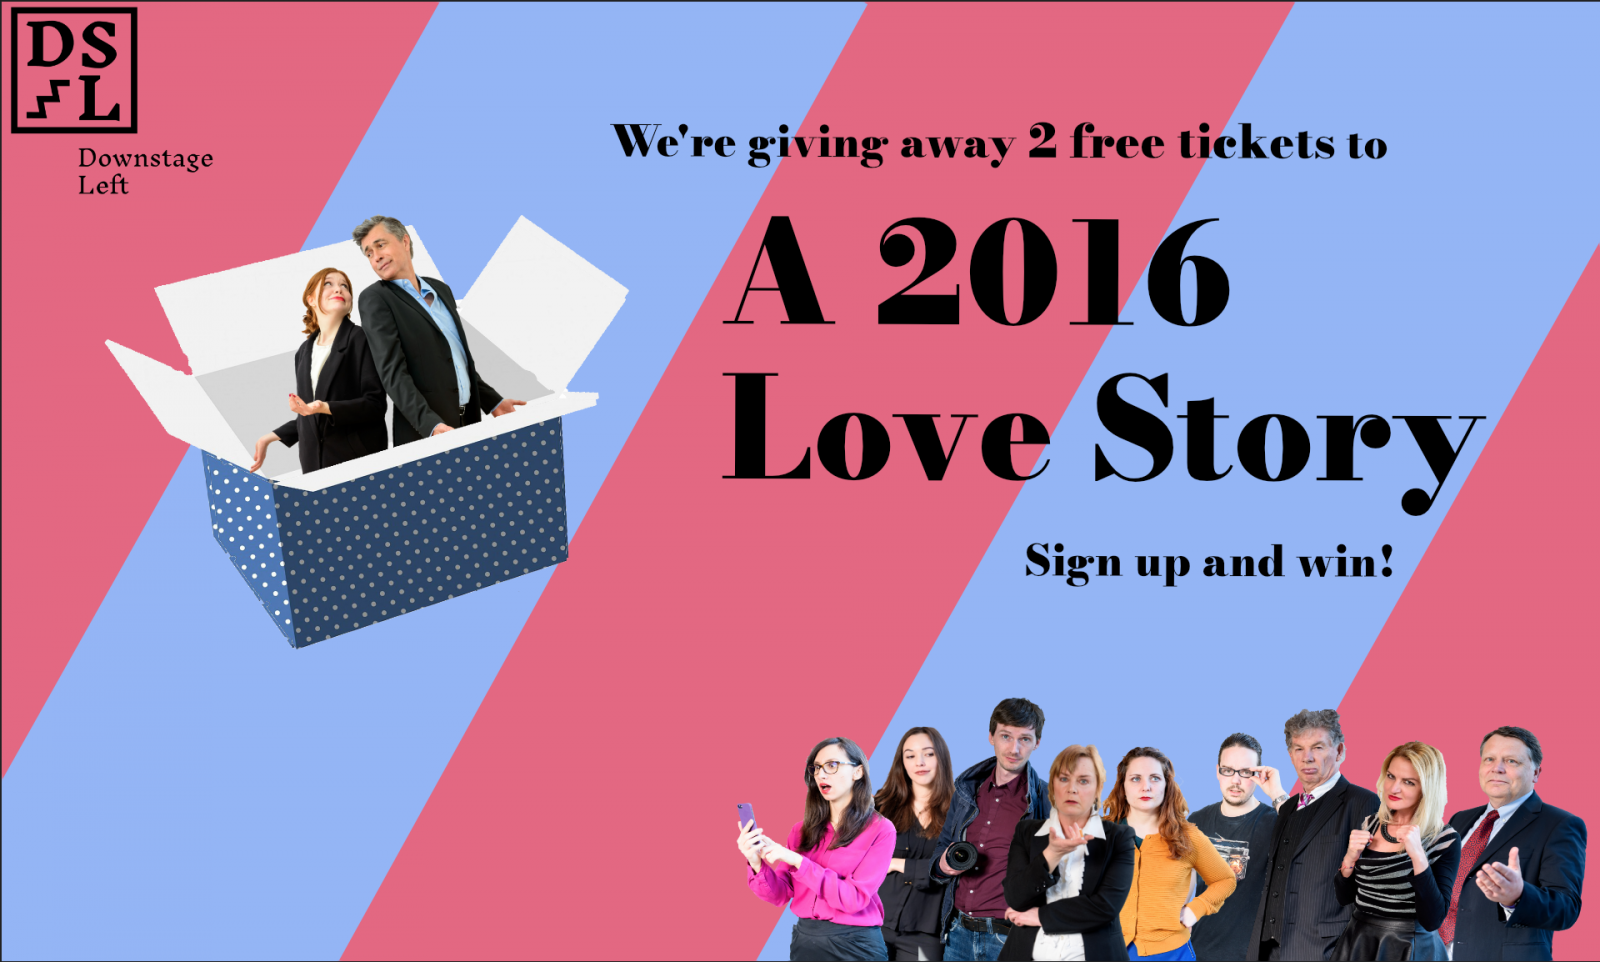 Downstage Left presents A 2016 Love Story